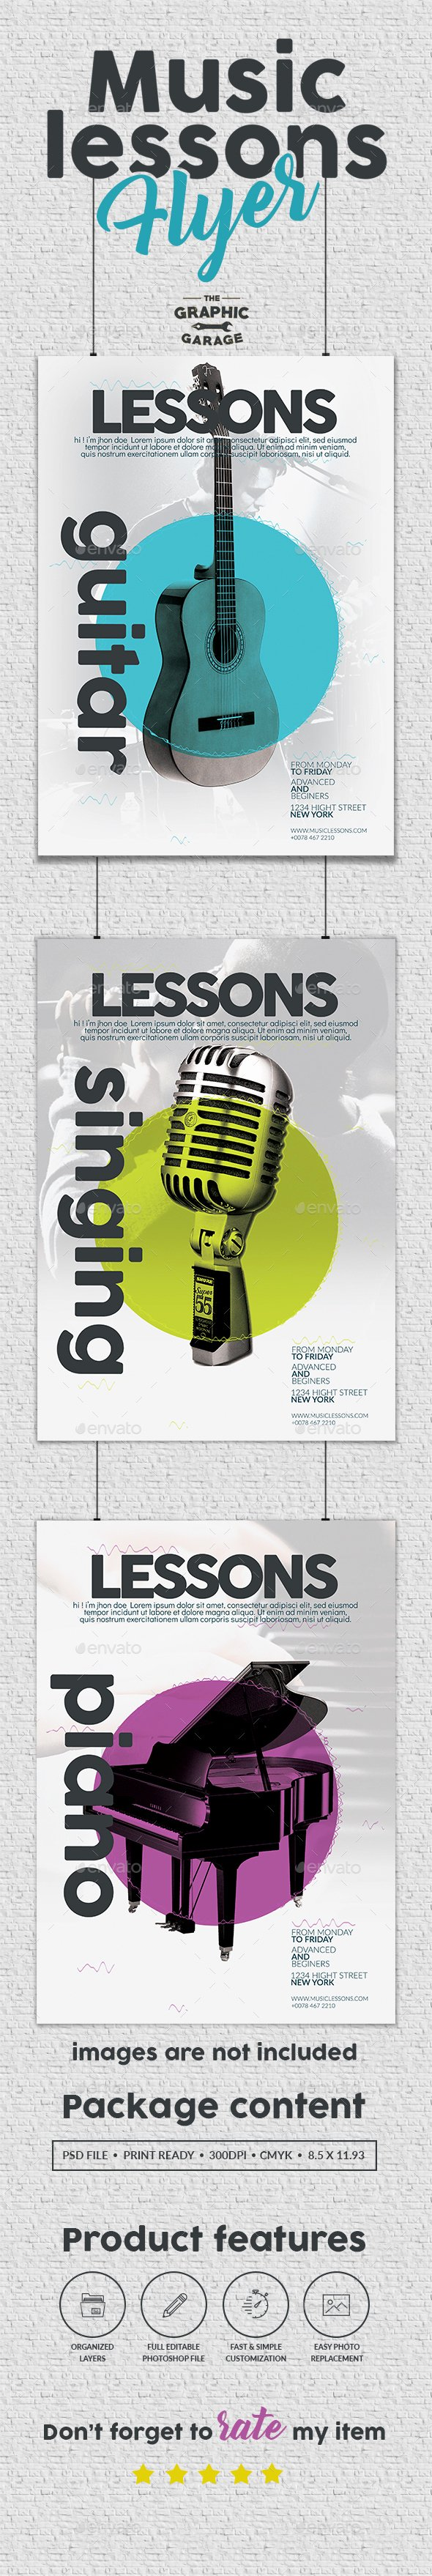 Music Lesson Flyer Template Luxury Music Lessons Flyer by Graphic Garage